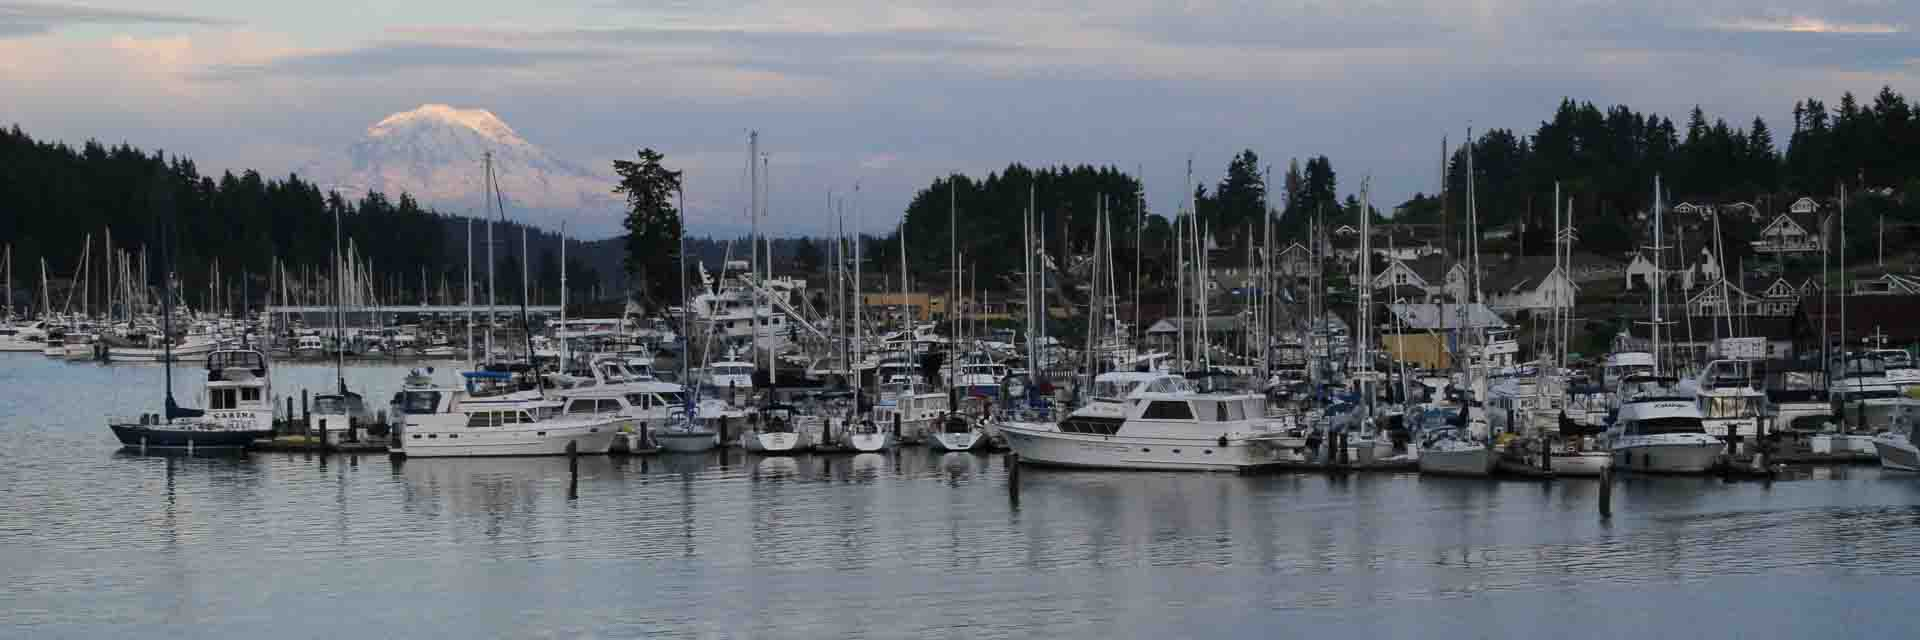 Gig Harbor Chamber of Commerce - Gig Harbor Chamber of